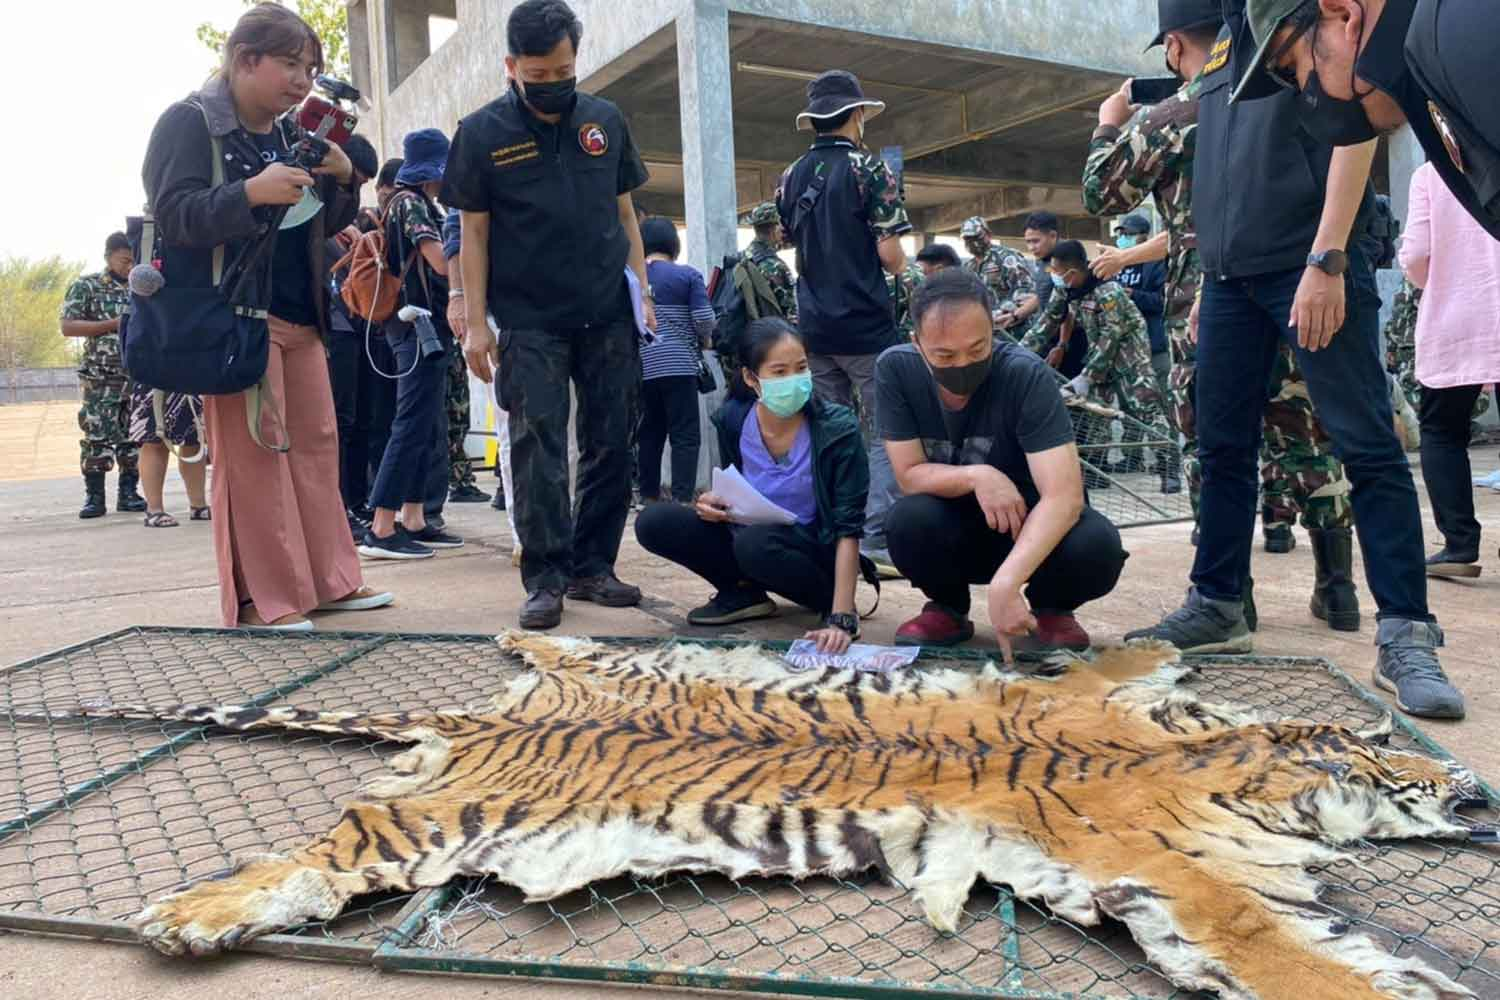 Officials of the Department of Natural Parks, Wildlife and Plant Conservation examine a tiger skin at Mukda Tiger Park & Farm in Mukdahan province. (Photo from the Department of Natural Parks, Wildlife and Plant Conservation.)